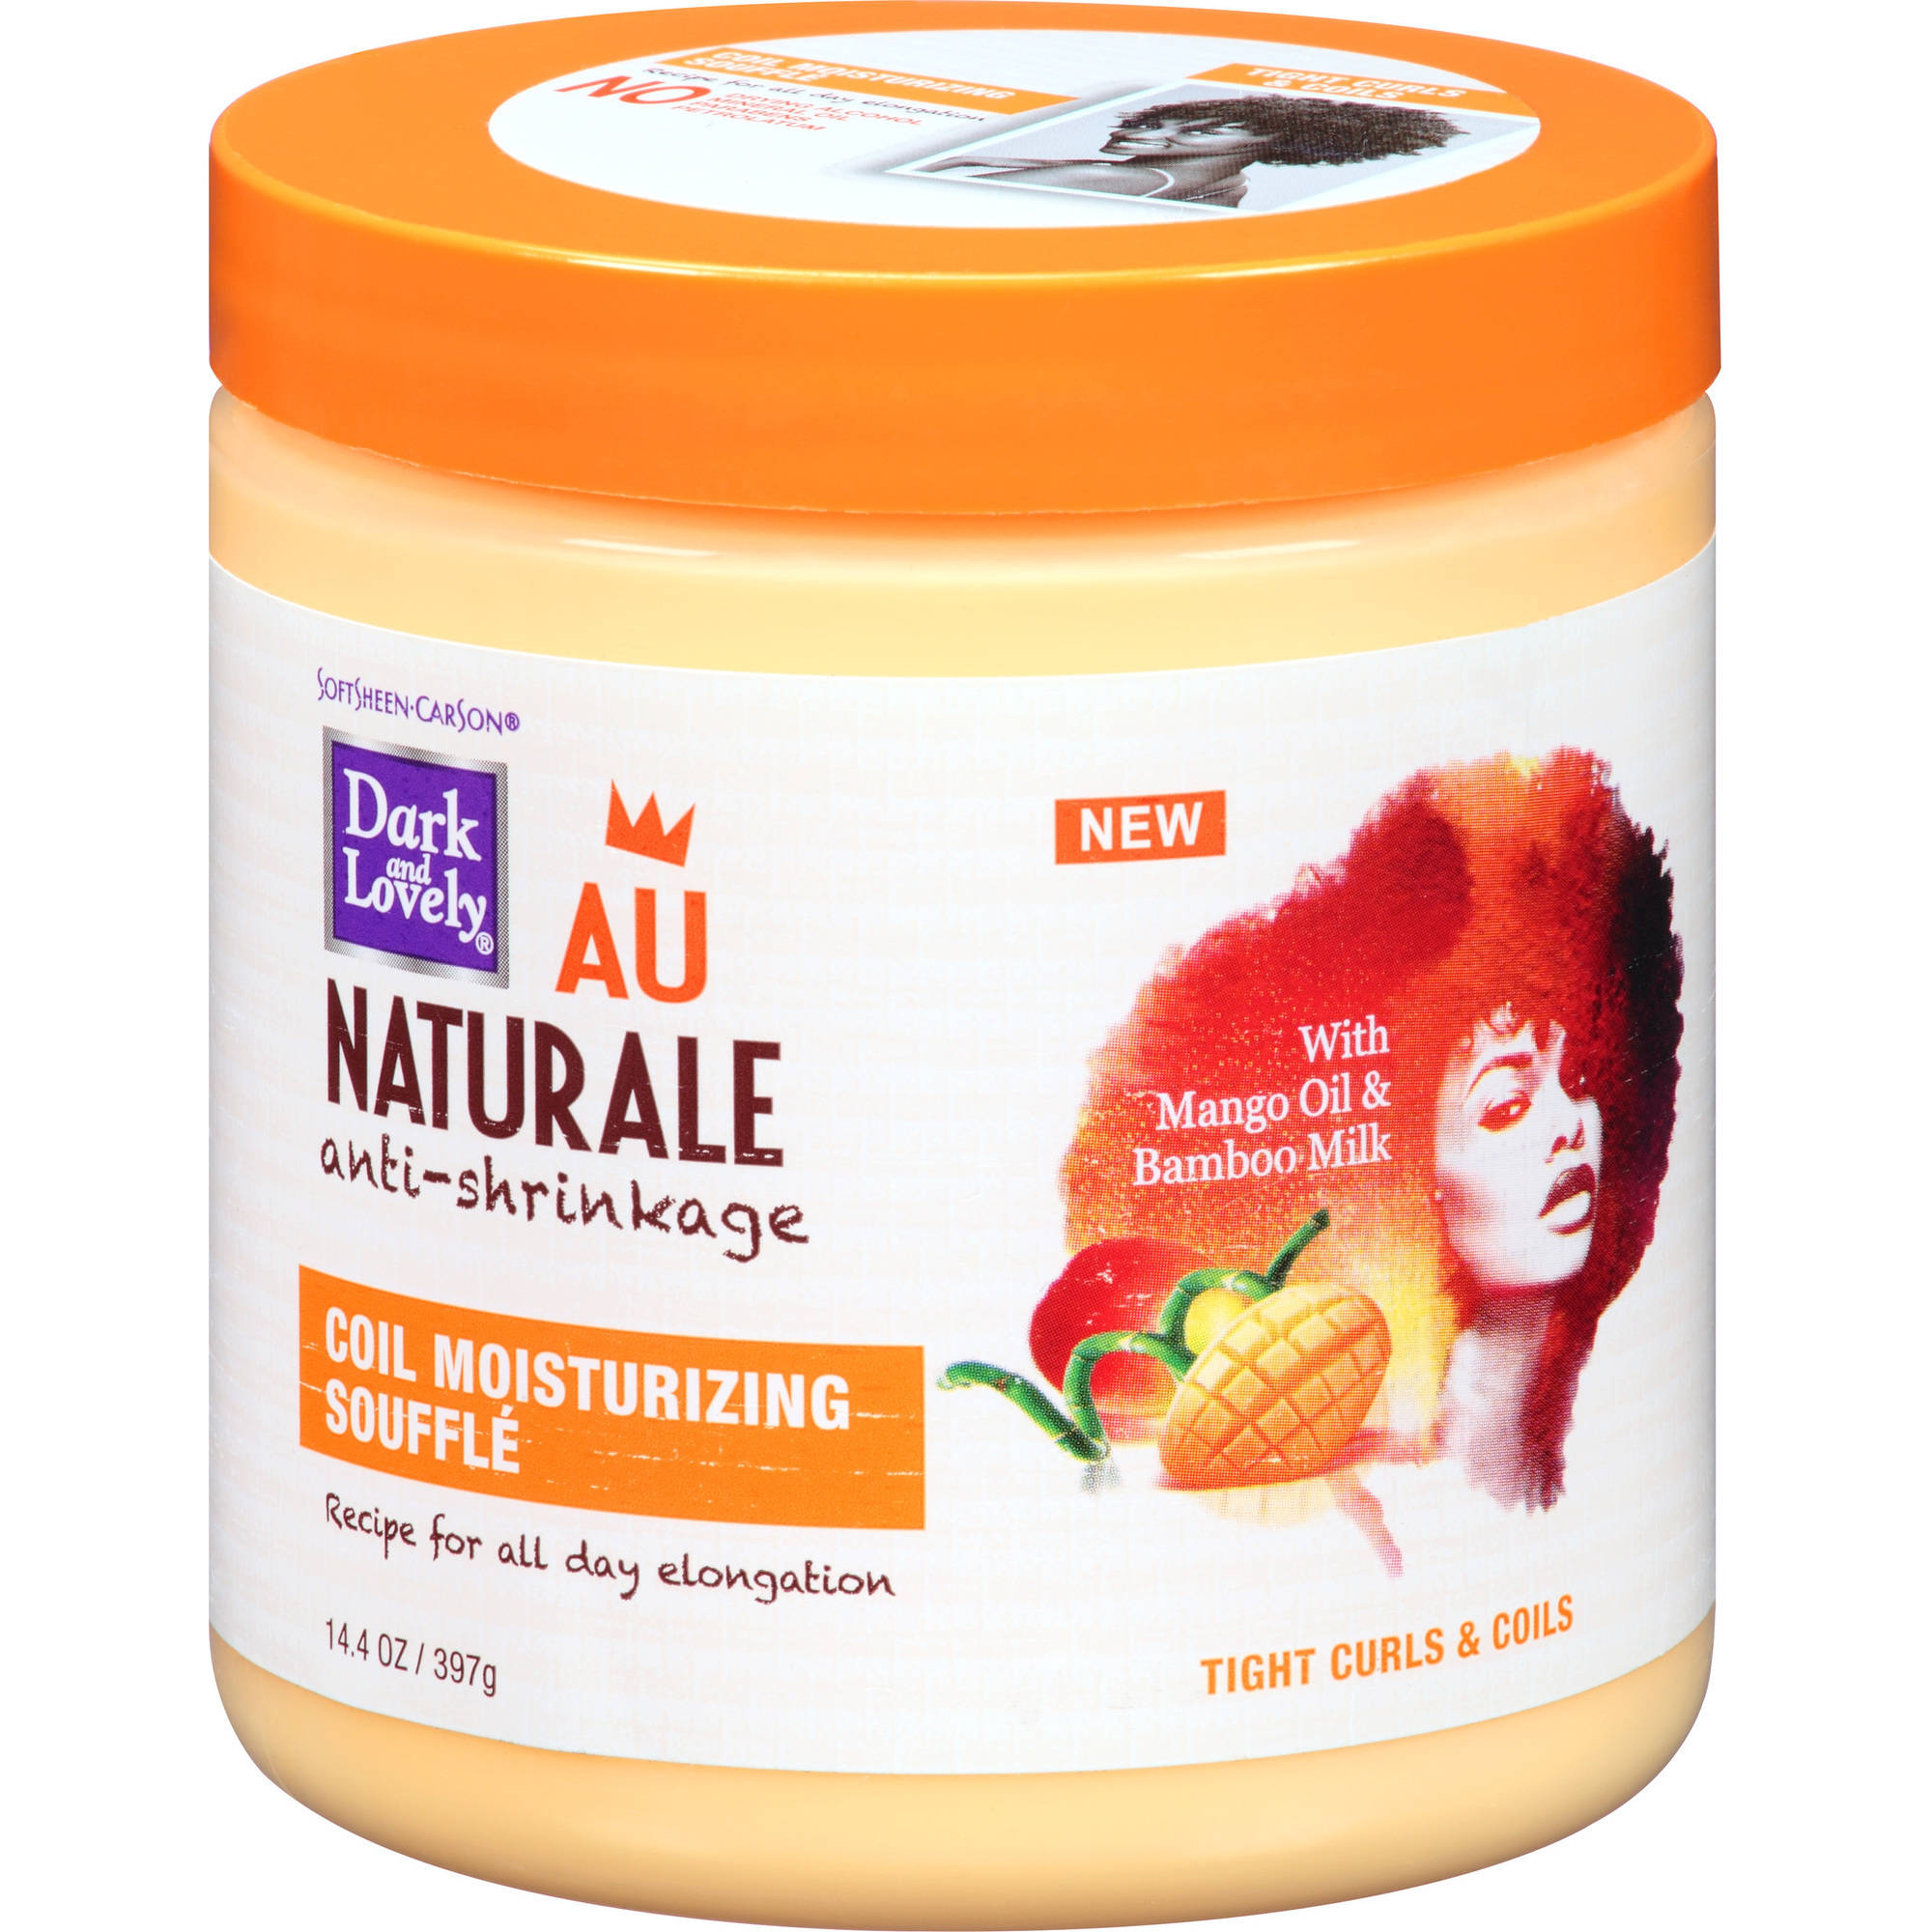 Dark & Lovely Au Naturale Anti-Shrinkage Coil Moisturizing Souffle, 14.4 oz